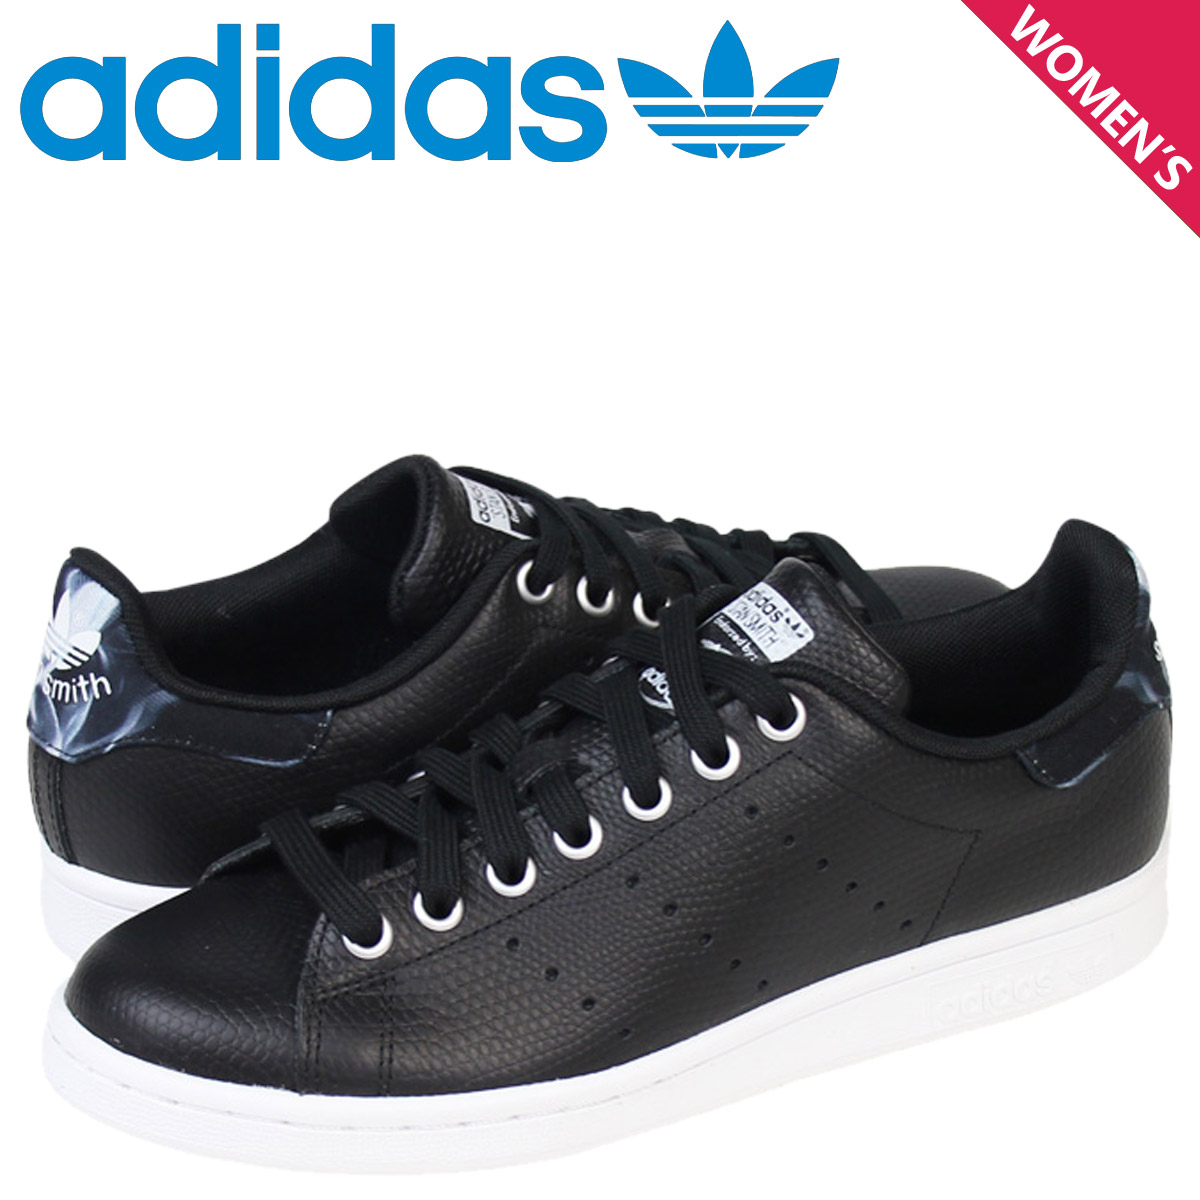 adidas mens stan smith classic sneakers